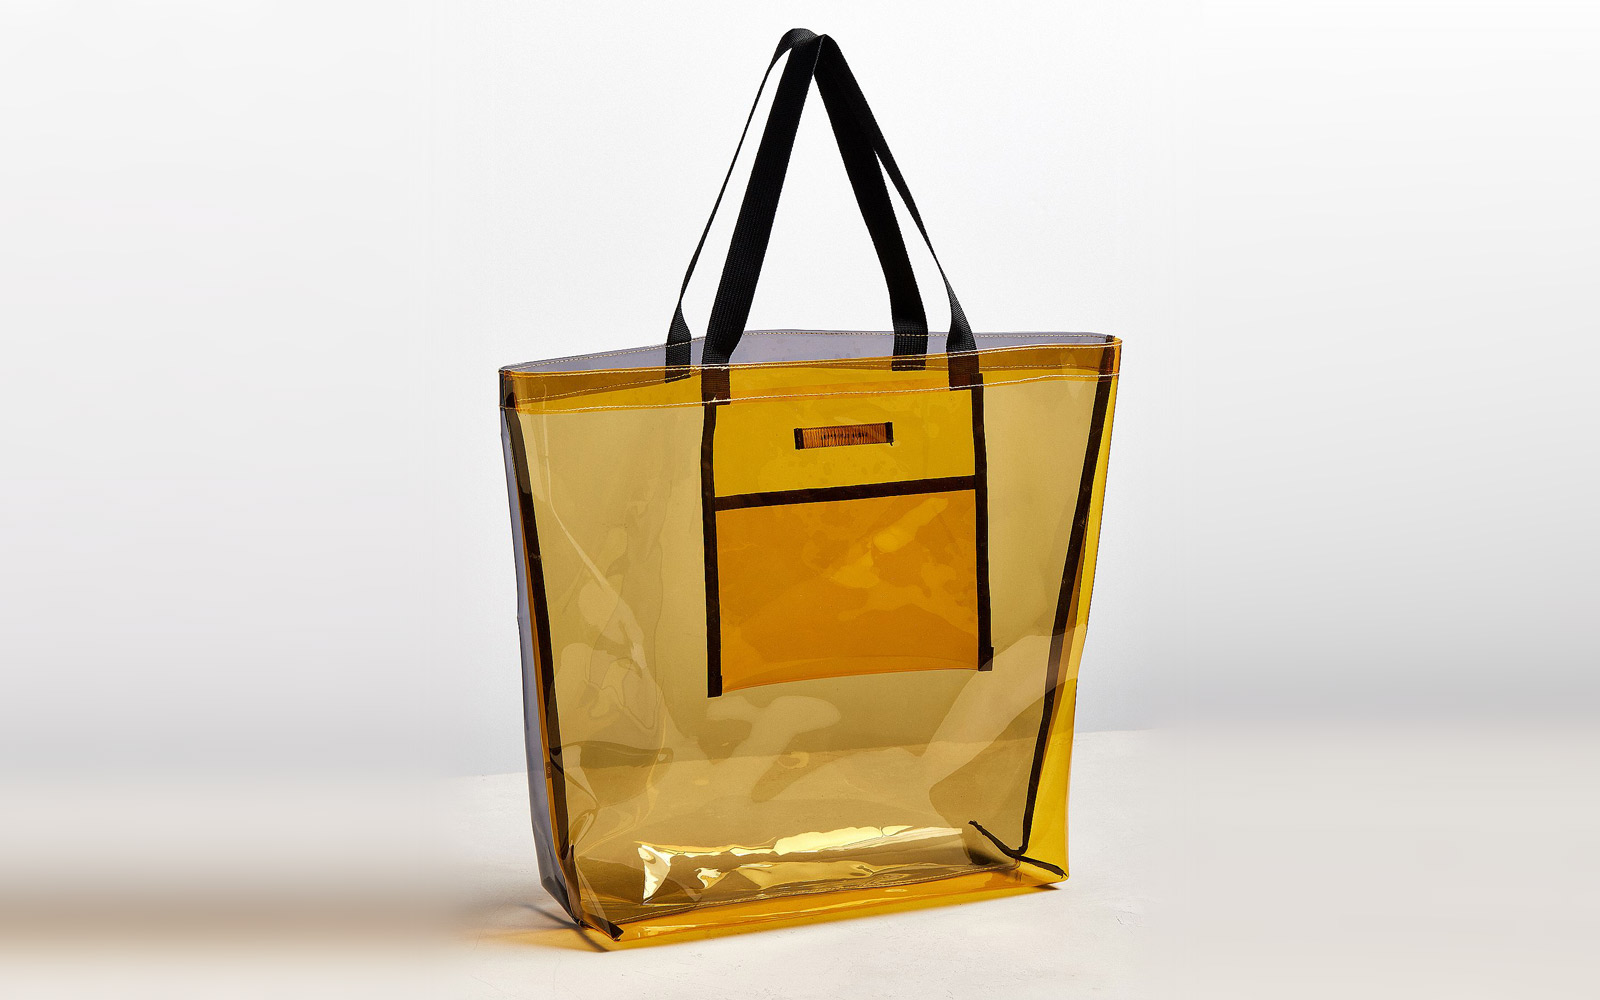 e5b1ce6d11c3 9 Clear Bags That Are Actually Stylish